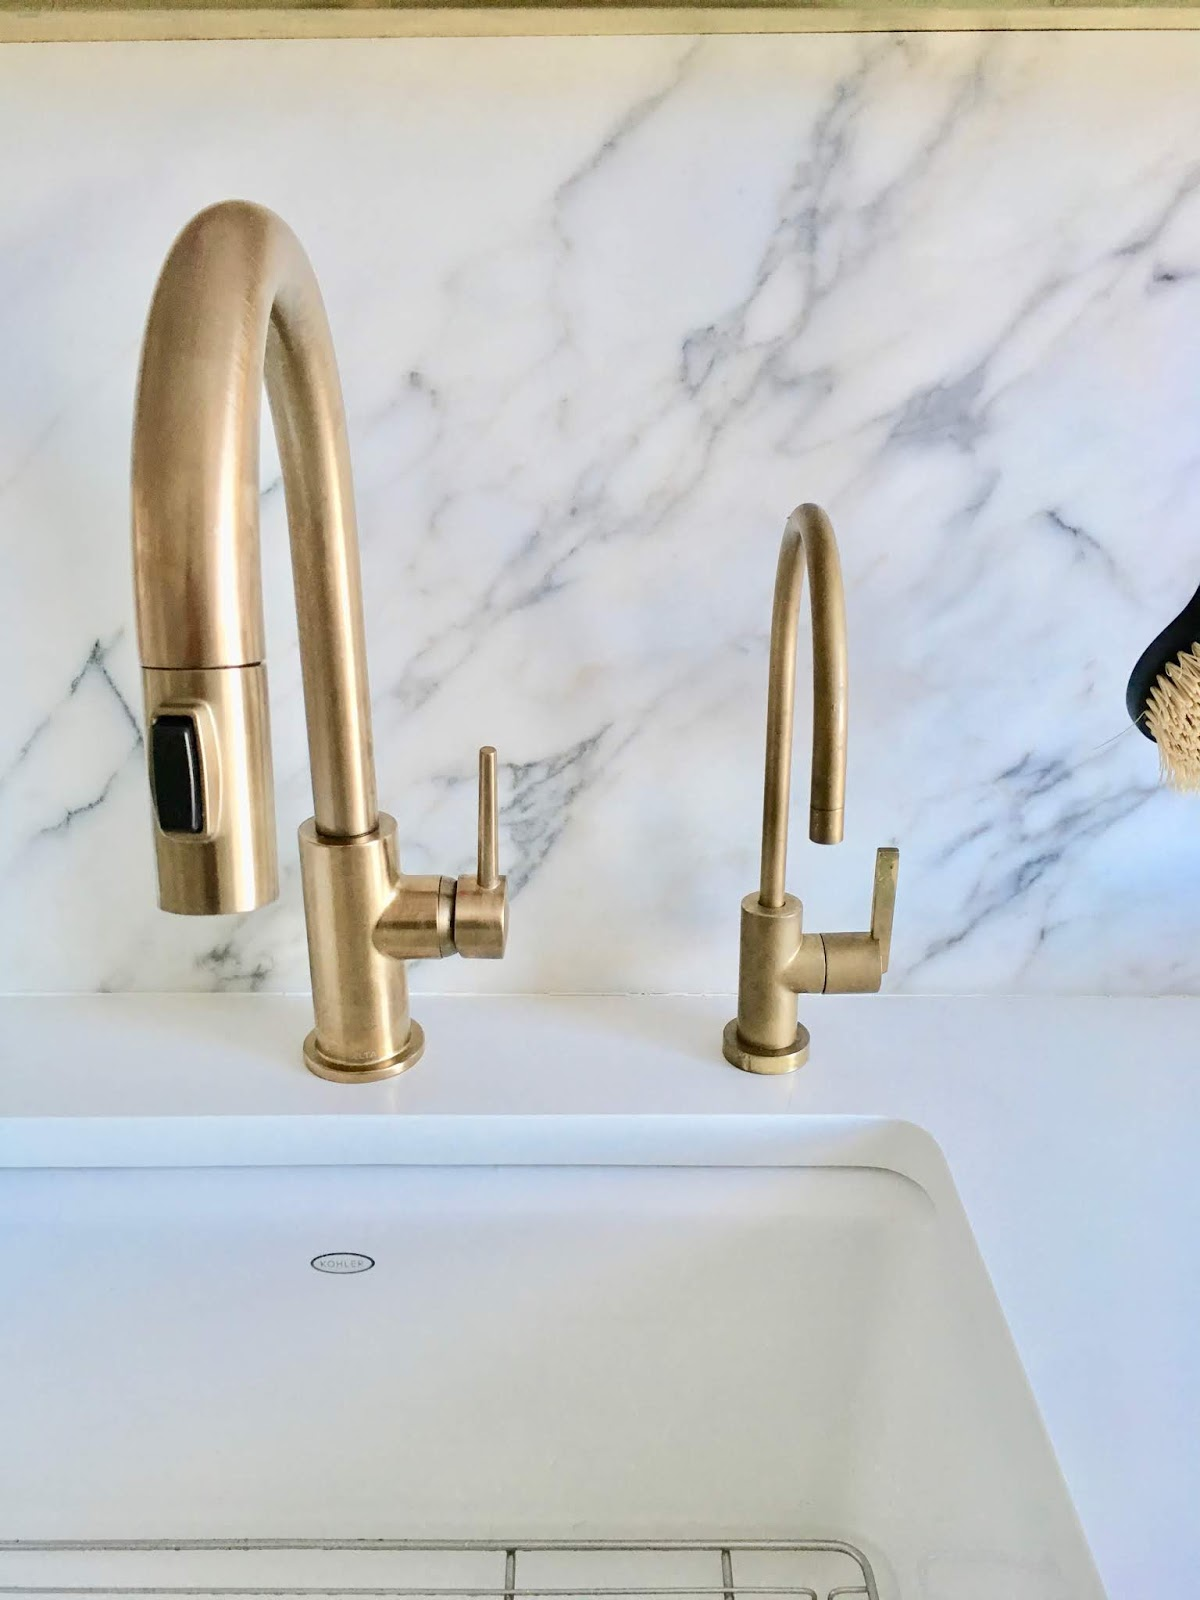 Renov8or Spray Painted Kitchen Sink Faucet One Year Later